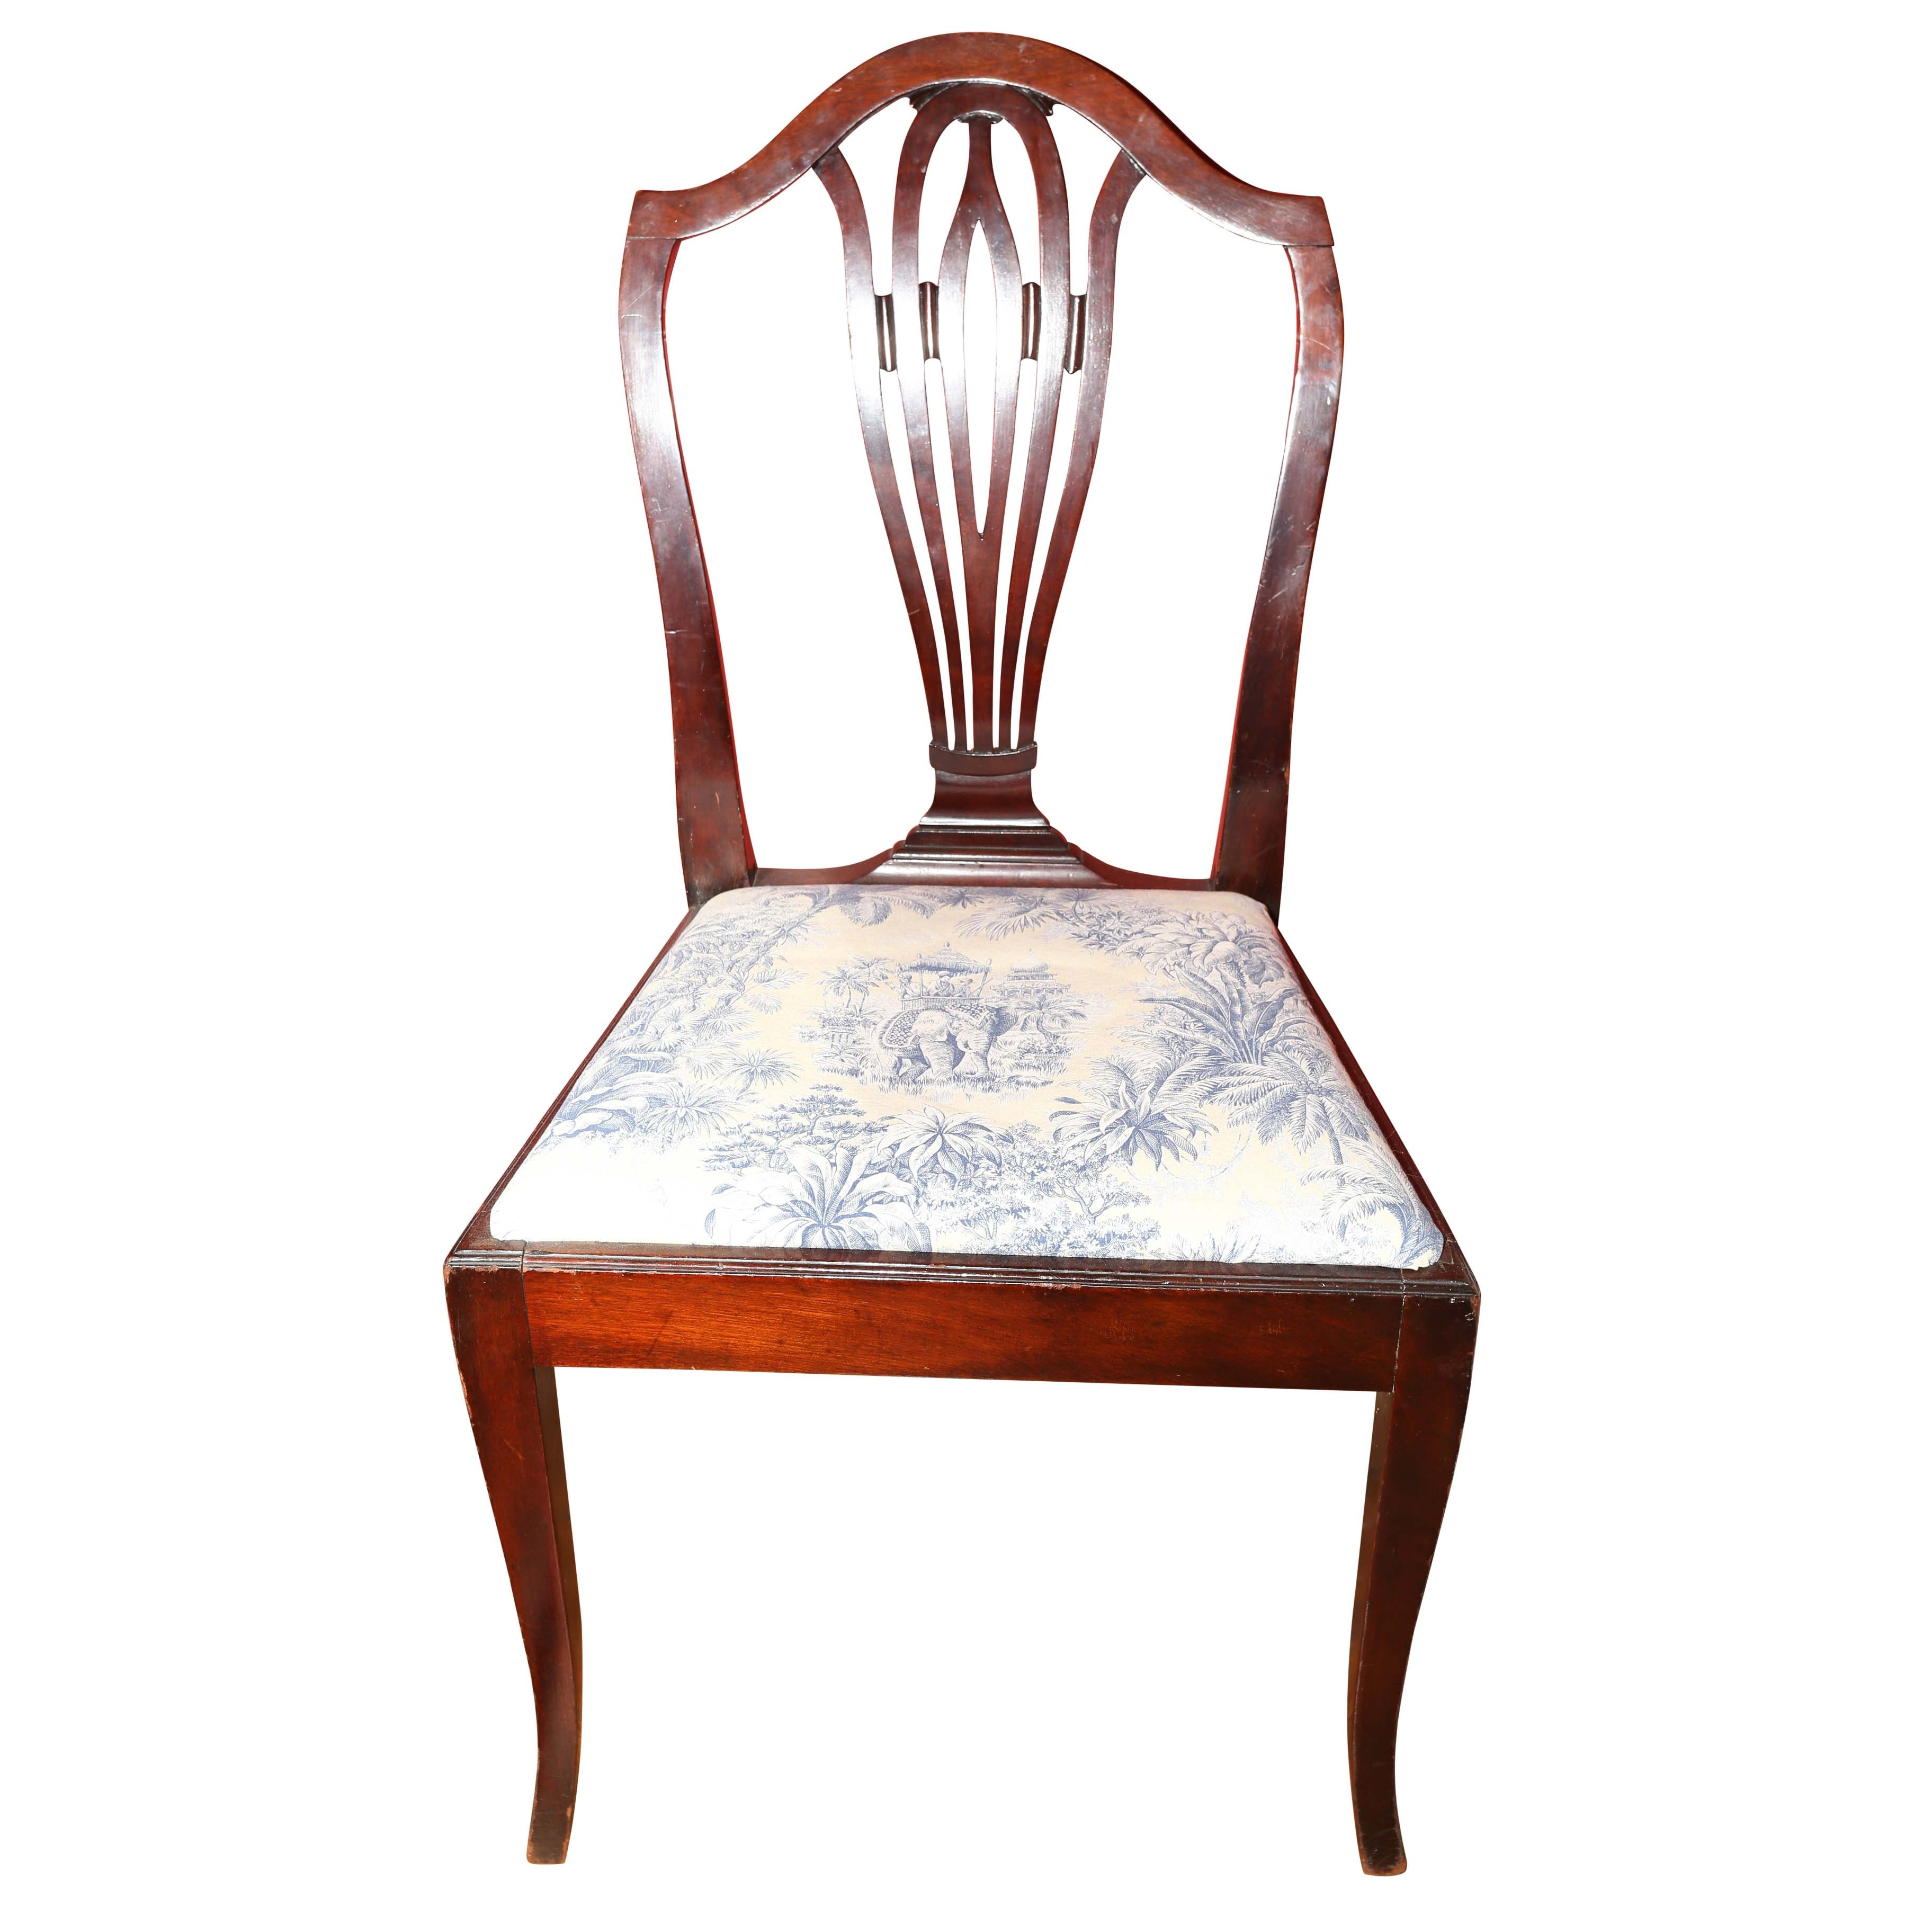 Vintage Sheraton-Style Side Chair with Toile Upholstered Seat